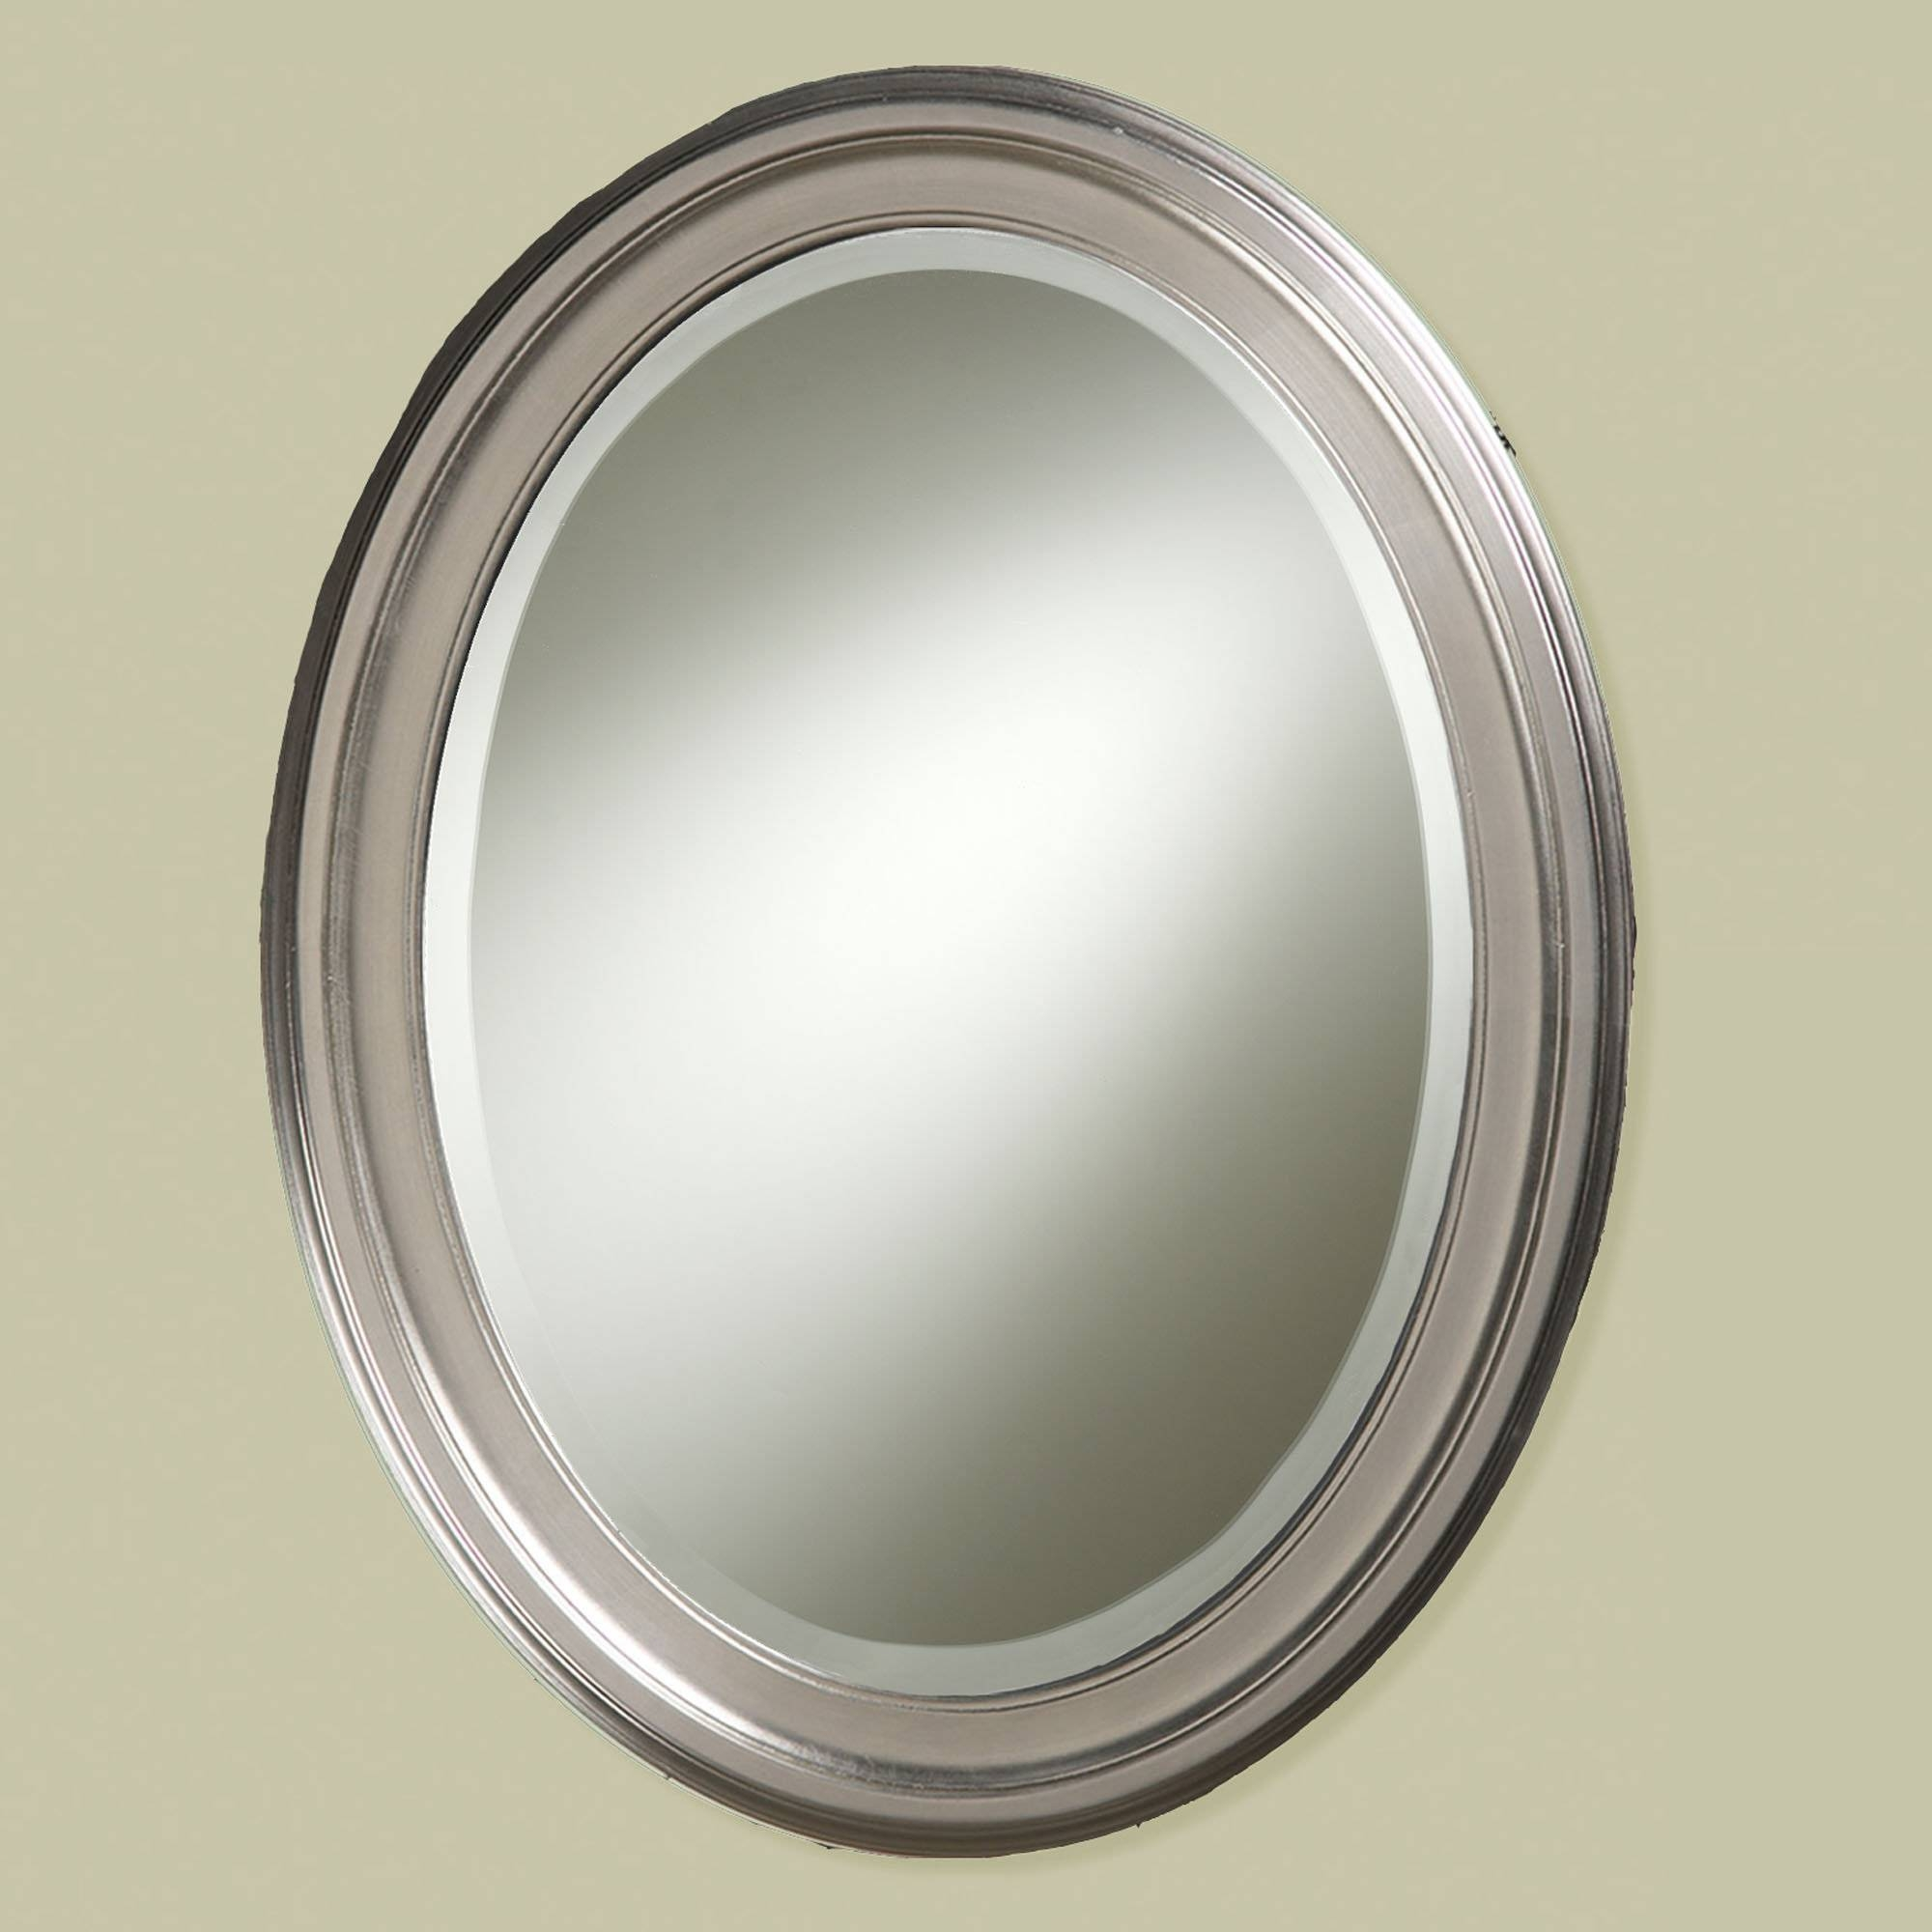 Bathroom: Bronze Framed Mirror | Oval Mirrors For Bathroom | Oval With Oval Wall Mirrors (View 2 of 25)